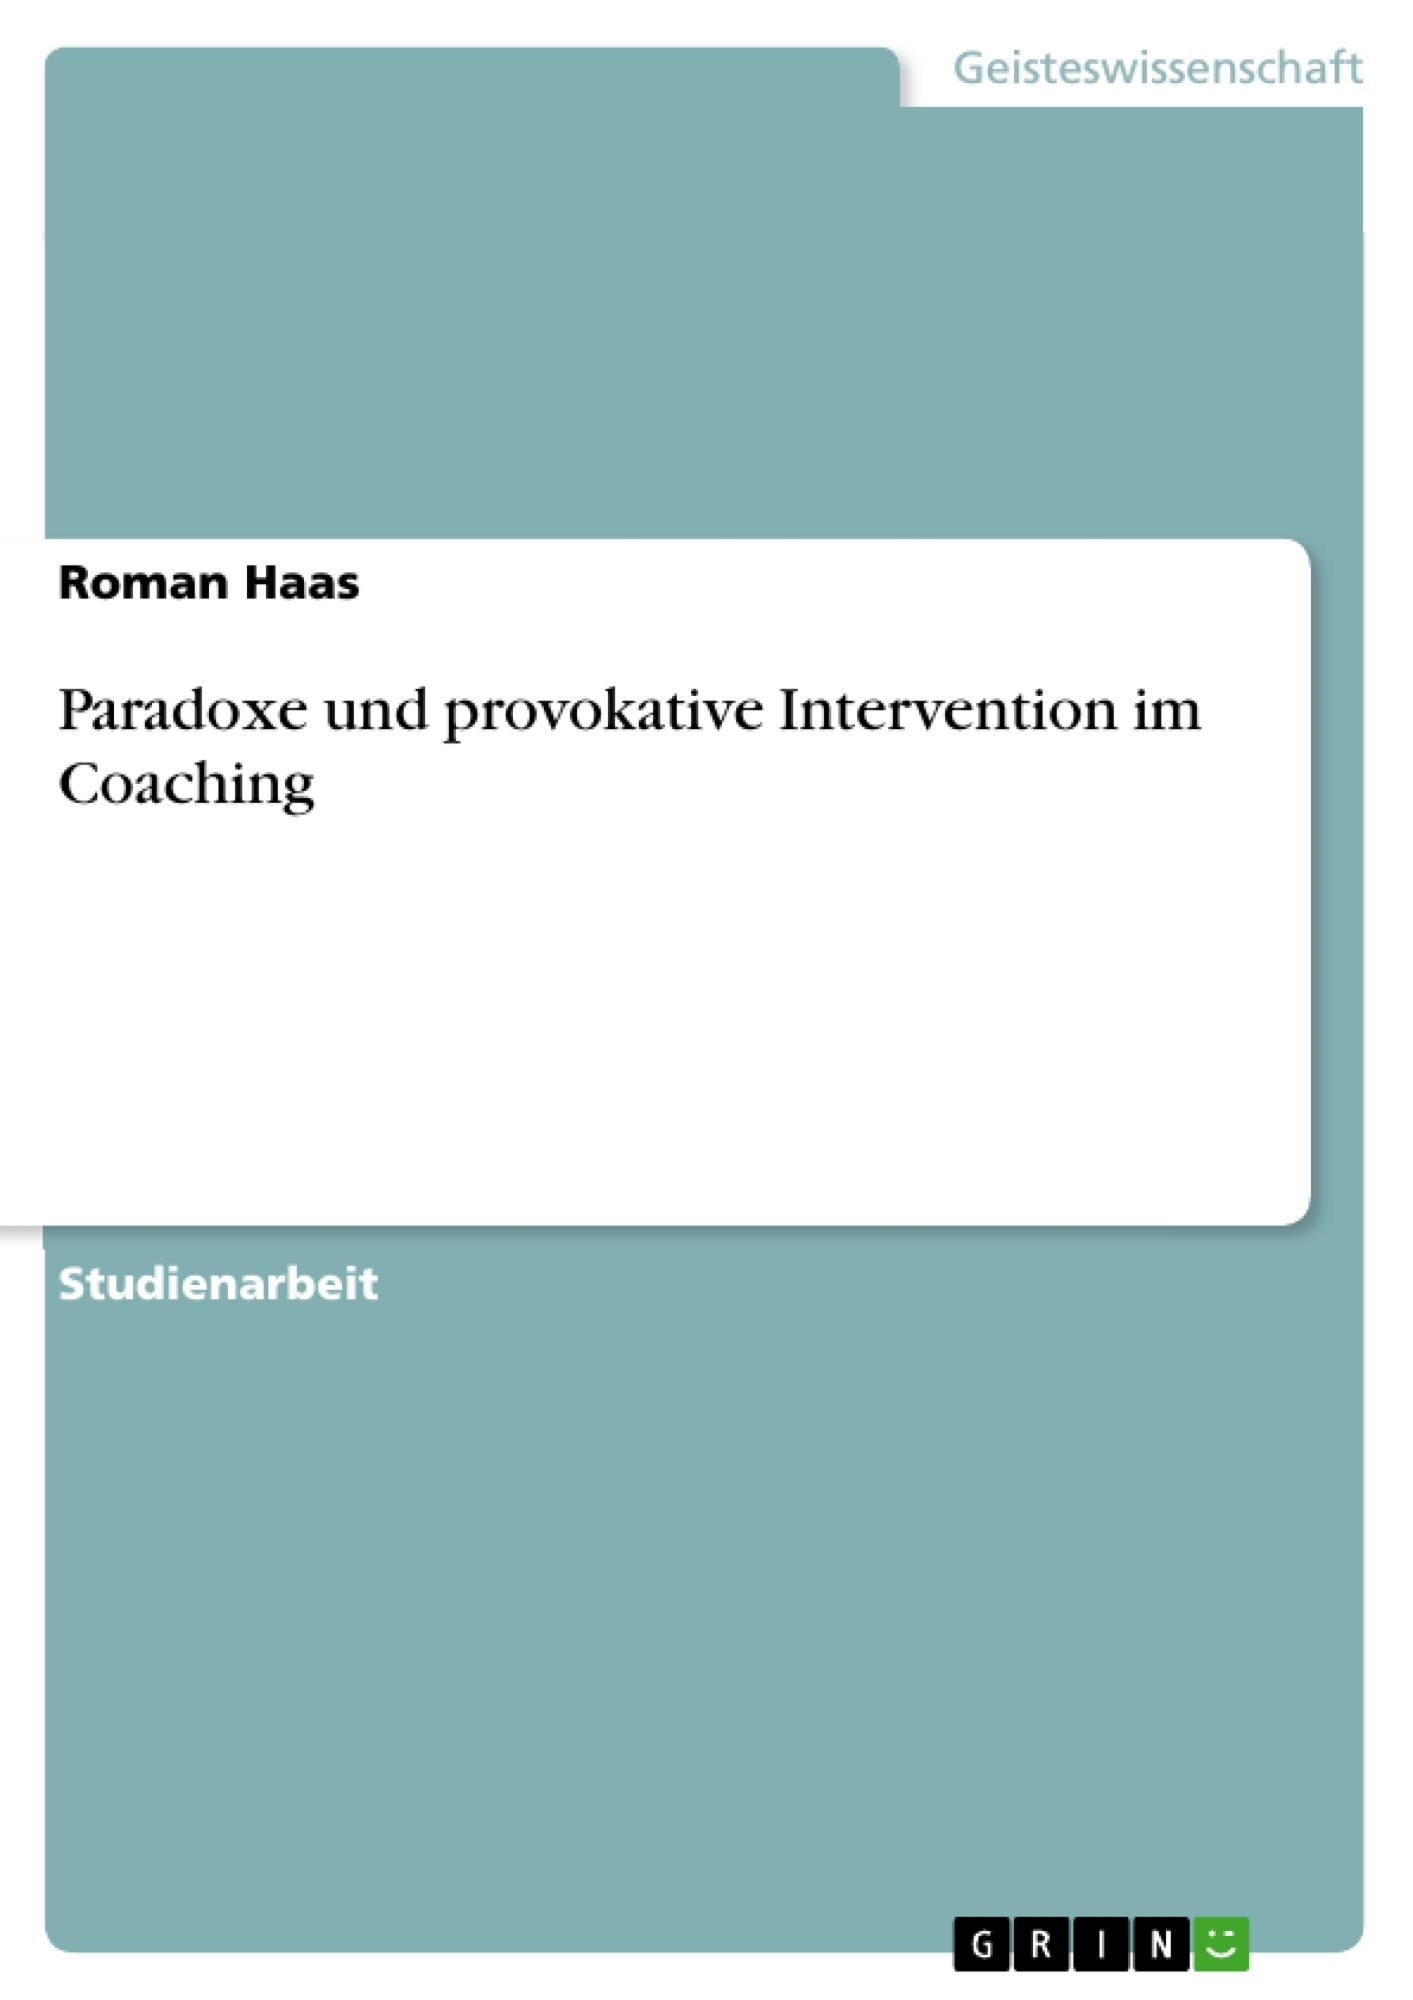 Titel: Paradoxe und provokative Intervention im Coaching